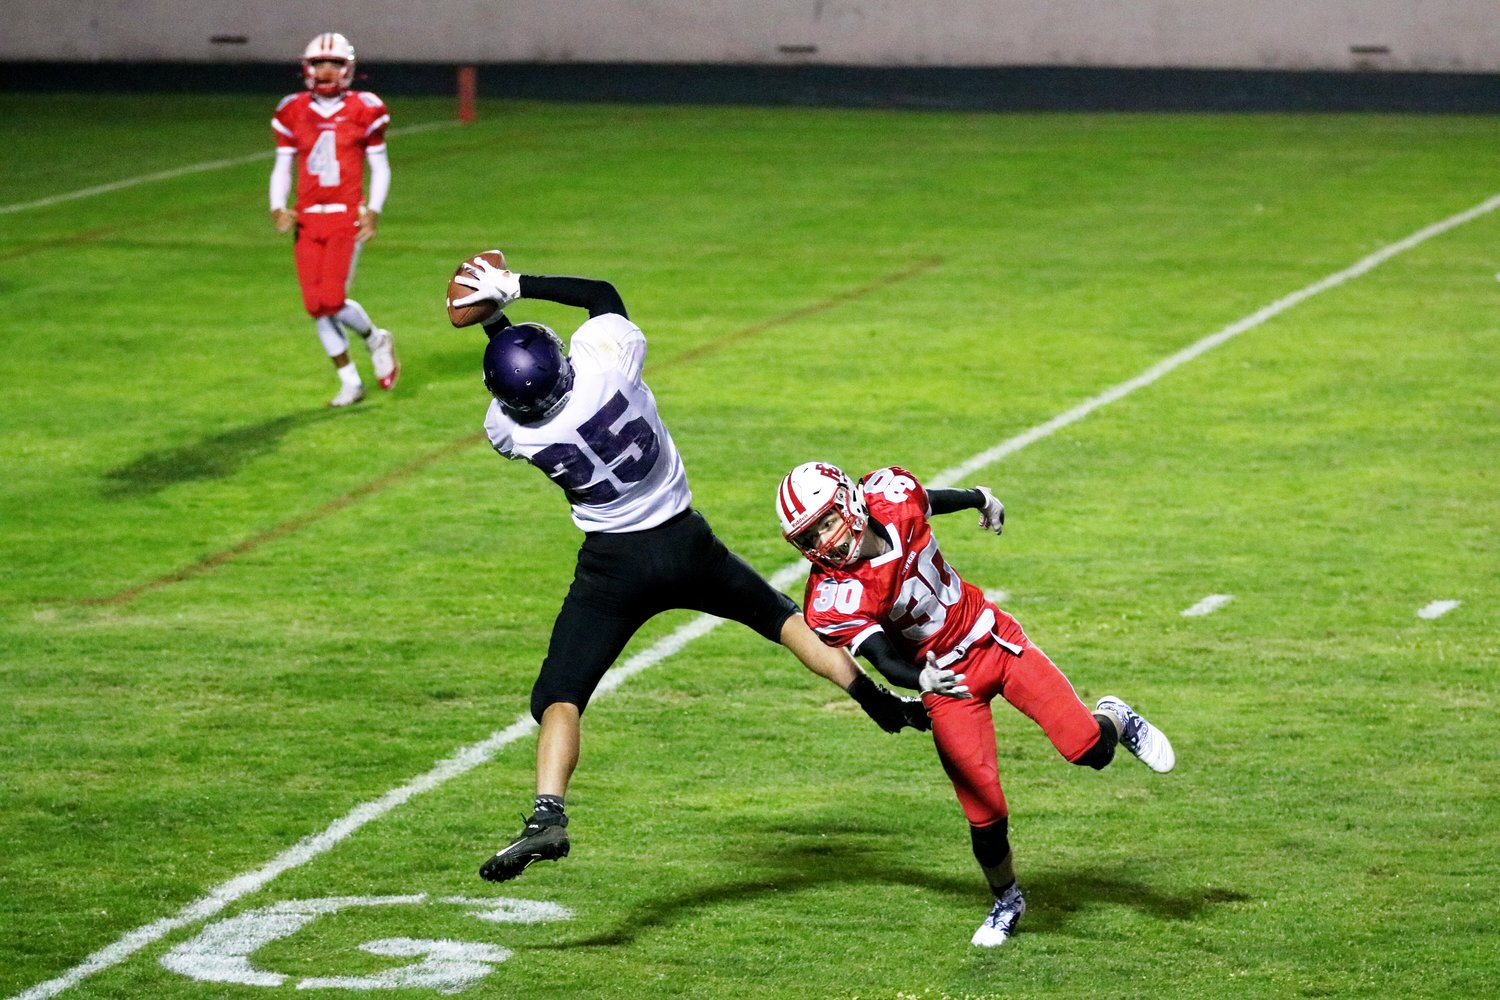 Mt. Hope wide receiver Cory Grifka makes a spectacular catch for a touchdown against EP